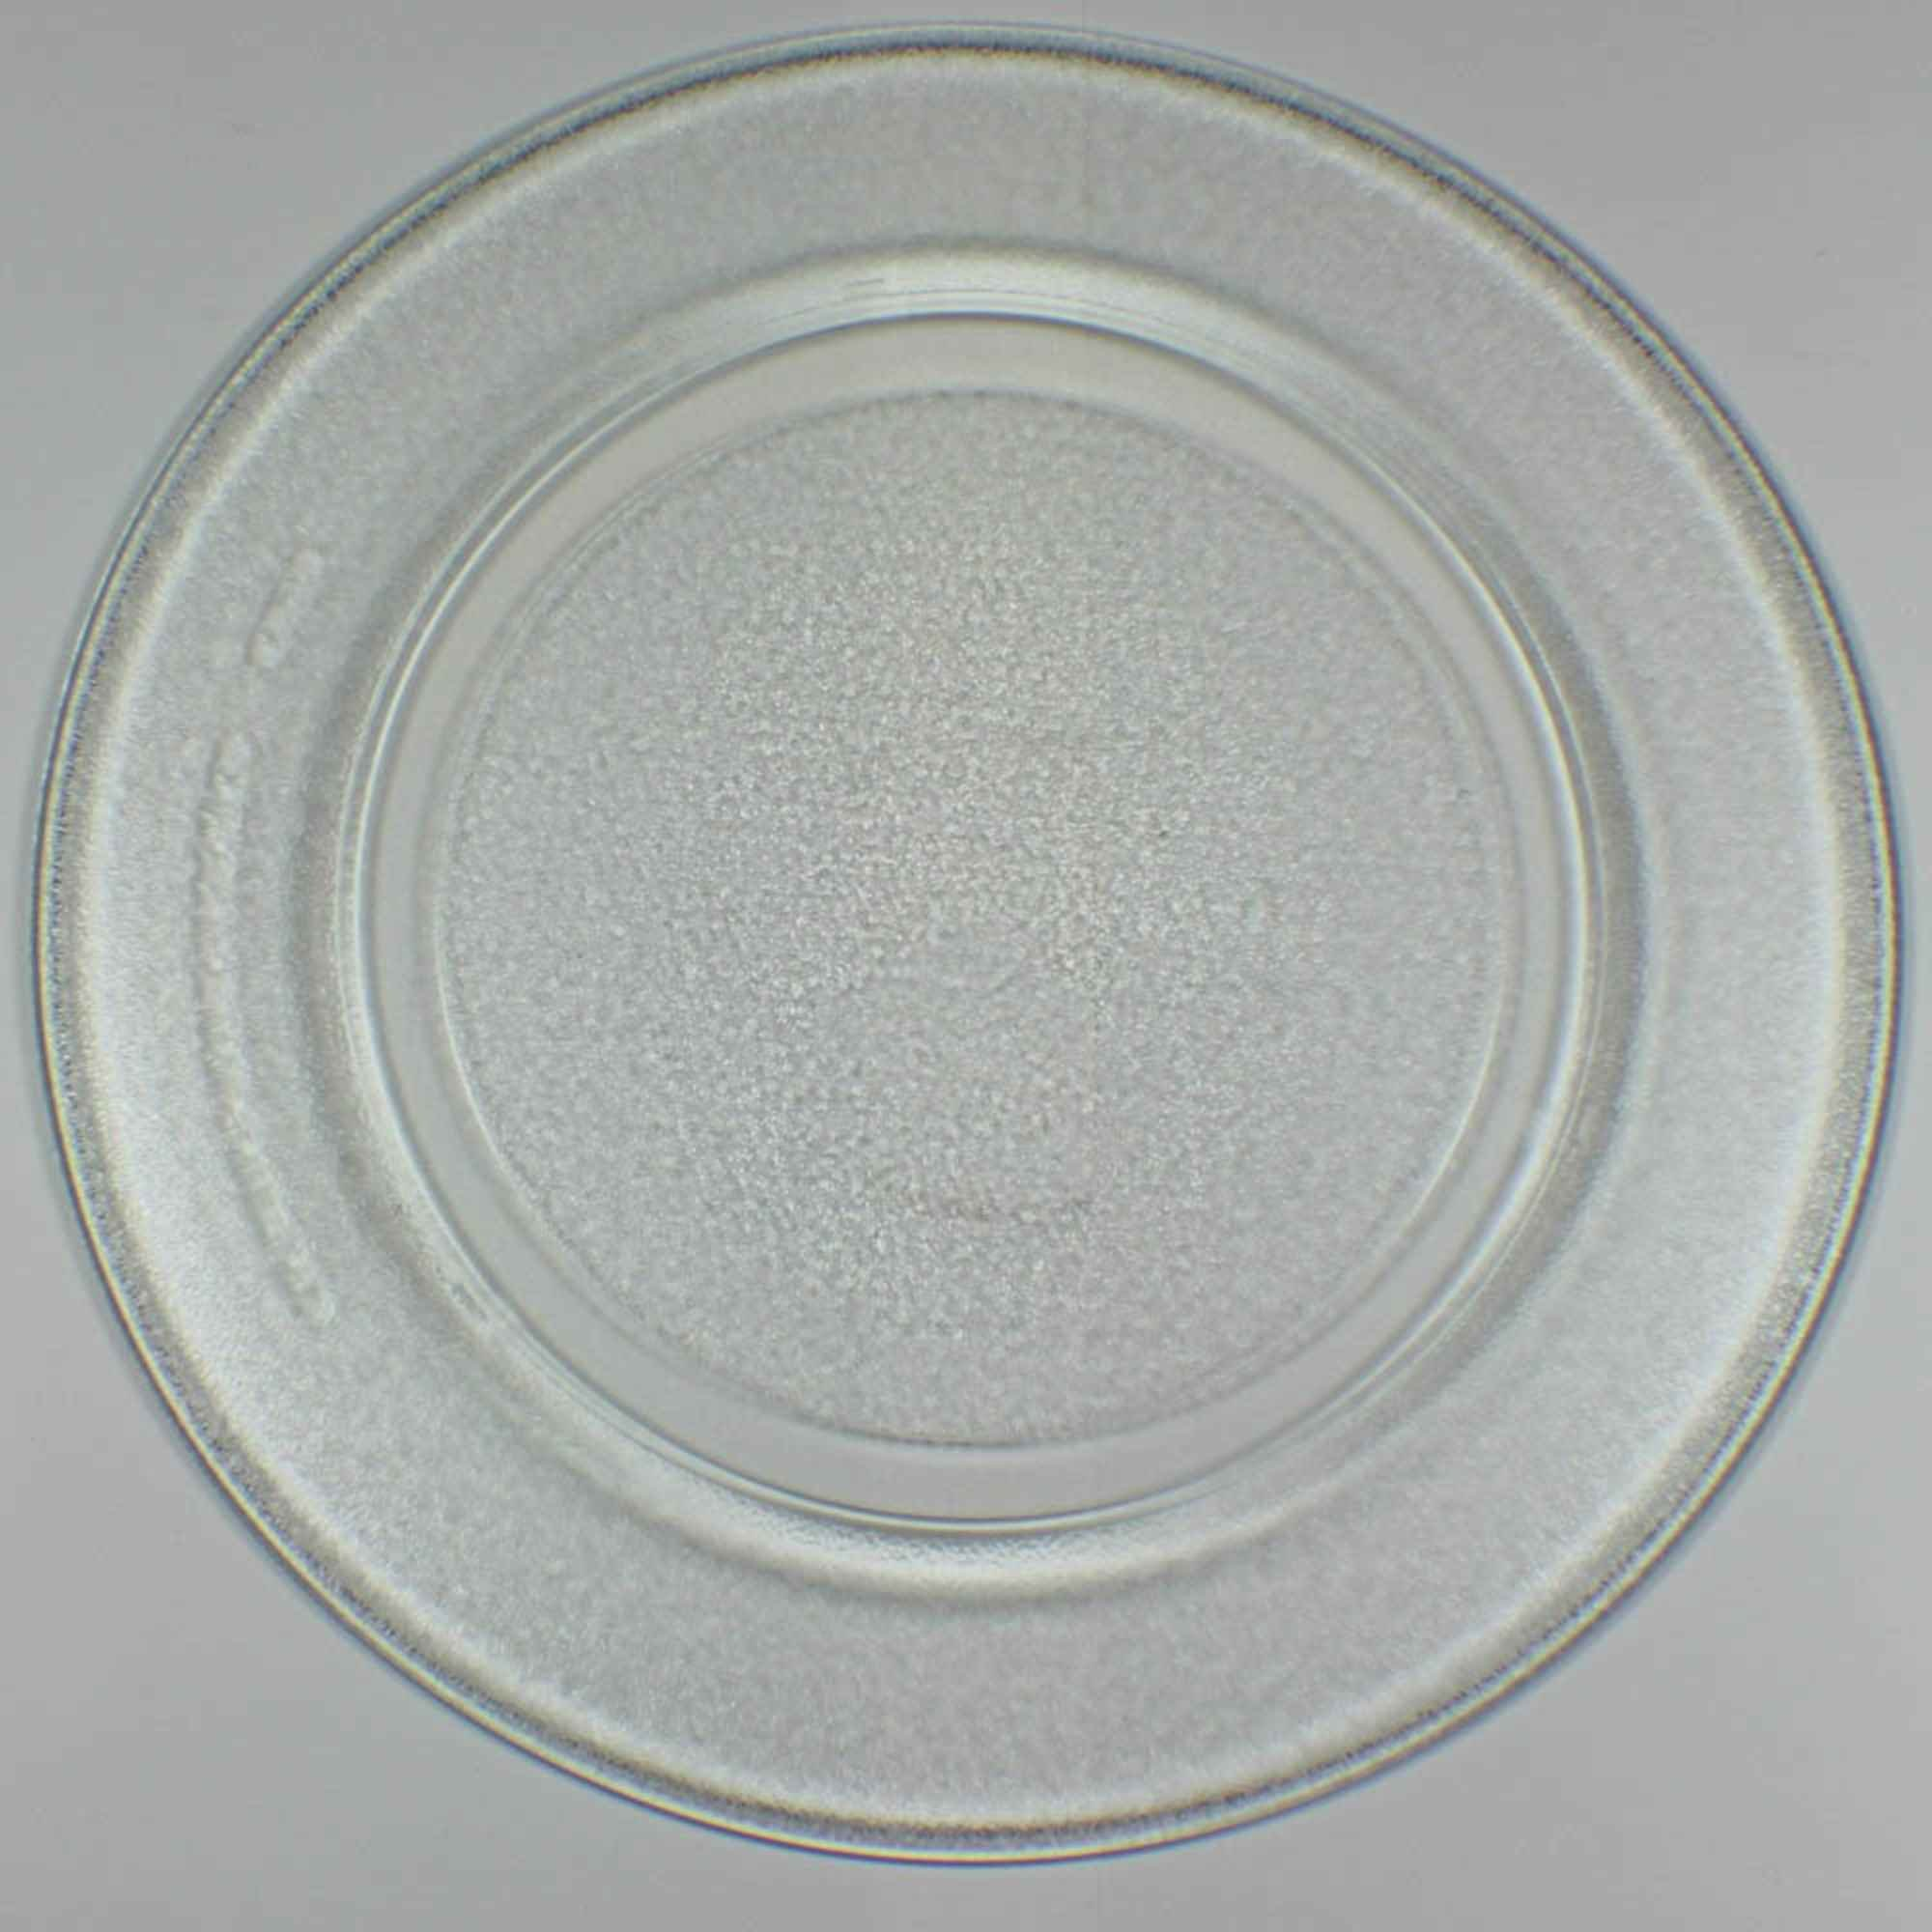 GE Microwave Glass Turntable Plate / Tray 14 1/8 '' WB49X10135